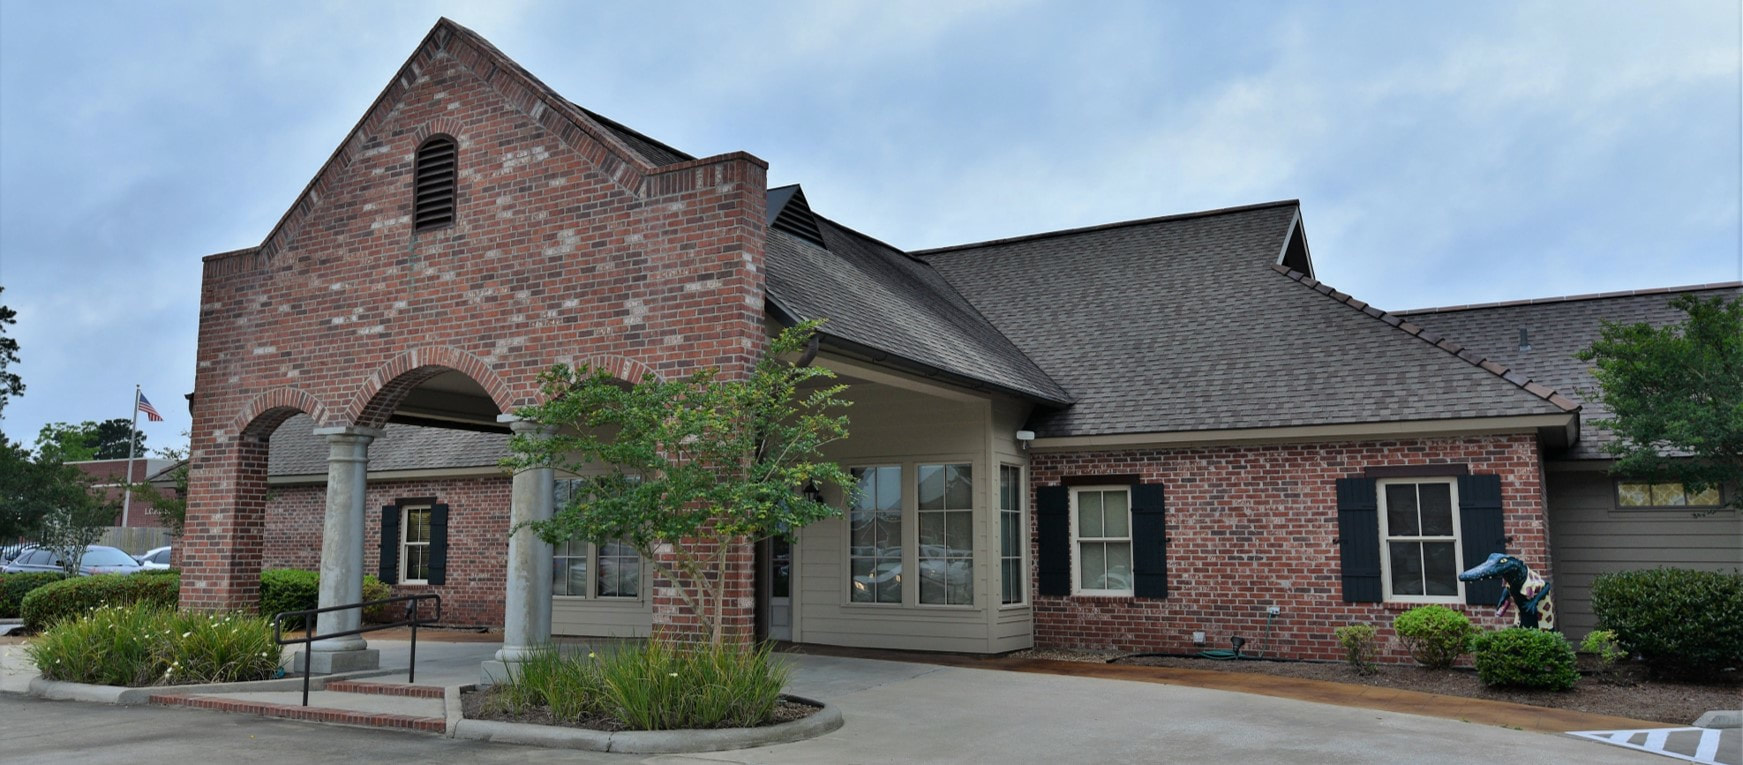 Dermatology Associates of SWLA Office Image - Lake Charles, La